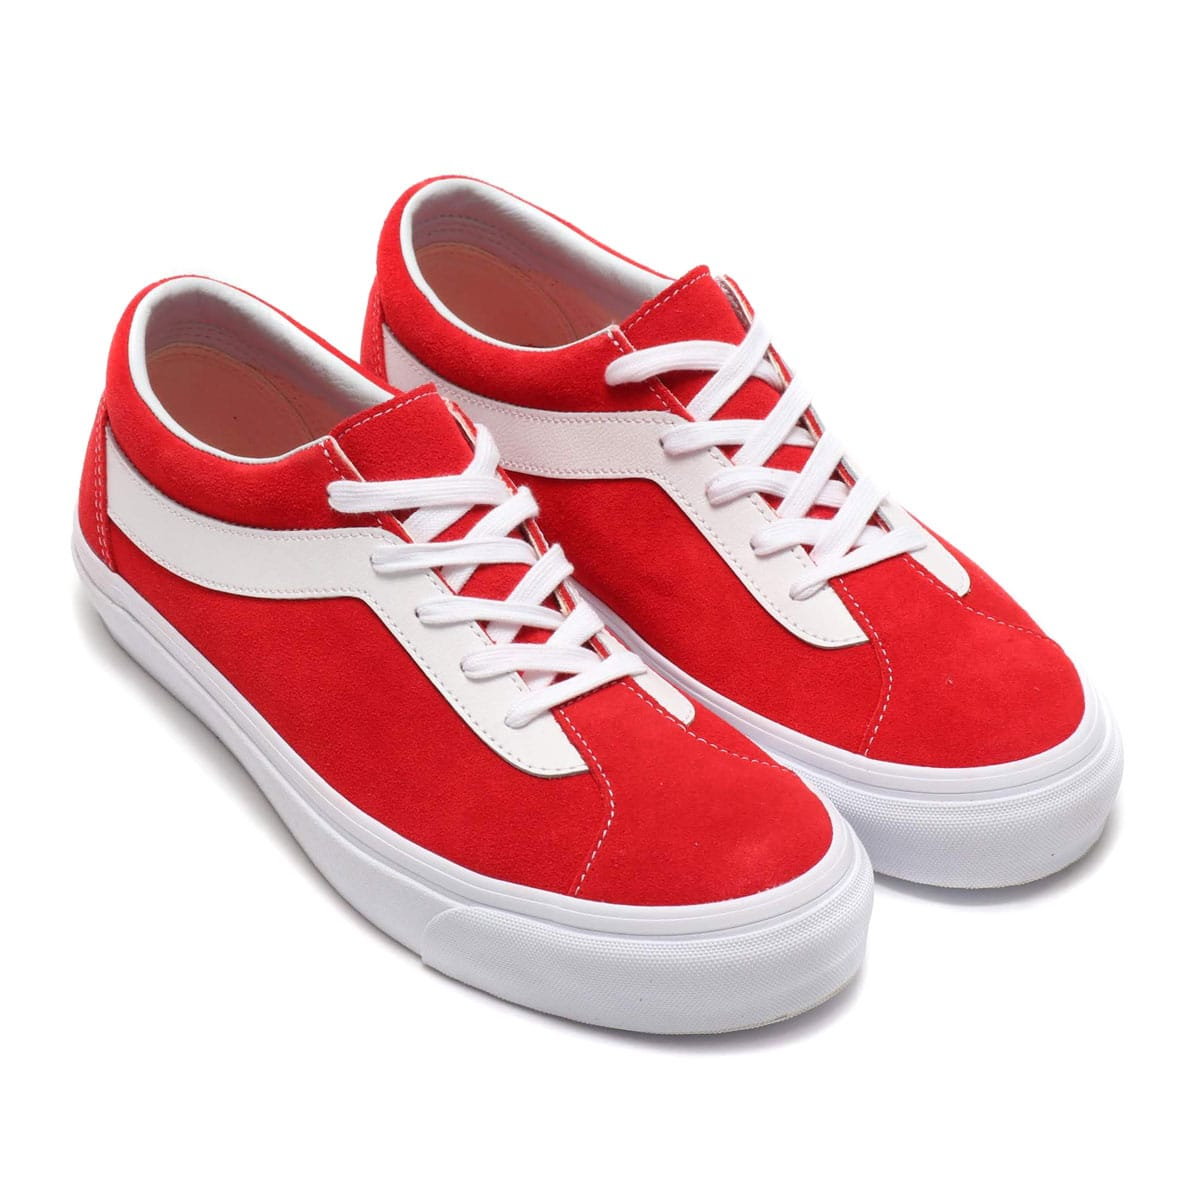 VANS BOLD NI STAPLE RACING RED/TRUE WHITE 19SP-I_photo_large